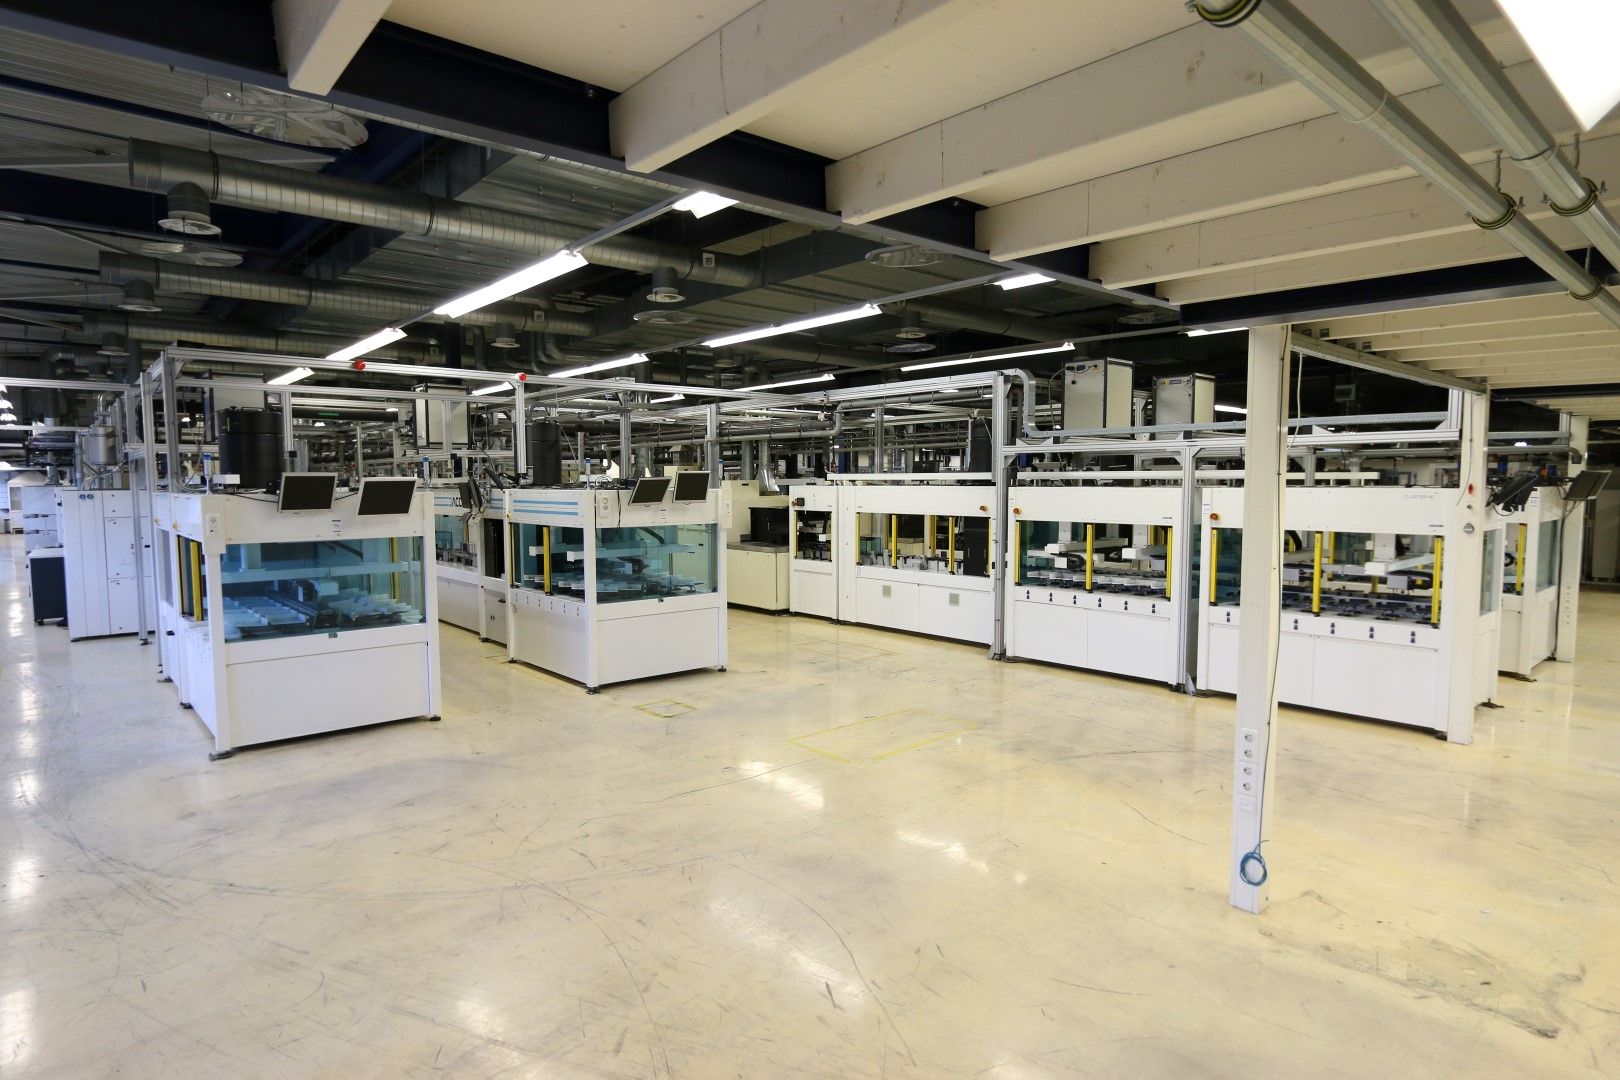 The solar cell plant was seen as being an advanced facility with a suite of leading-edge processing equipment at the time, which included screen printing tools capable of 5 busbars from Baccini, through to Innolas MWT laser processing workstation and a Schmid wafer texturing line.